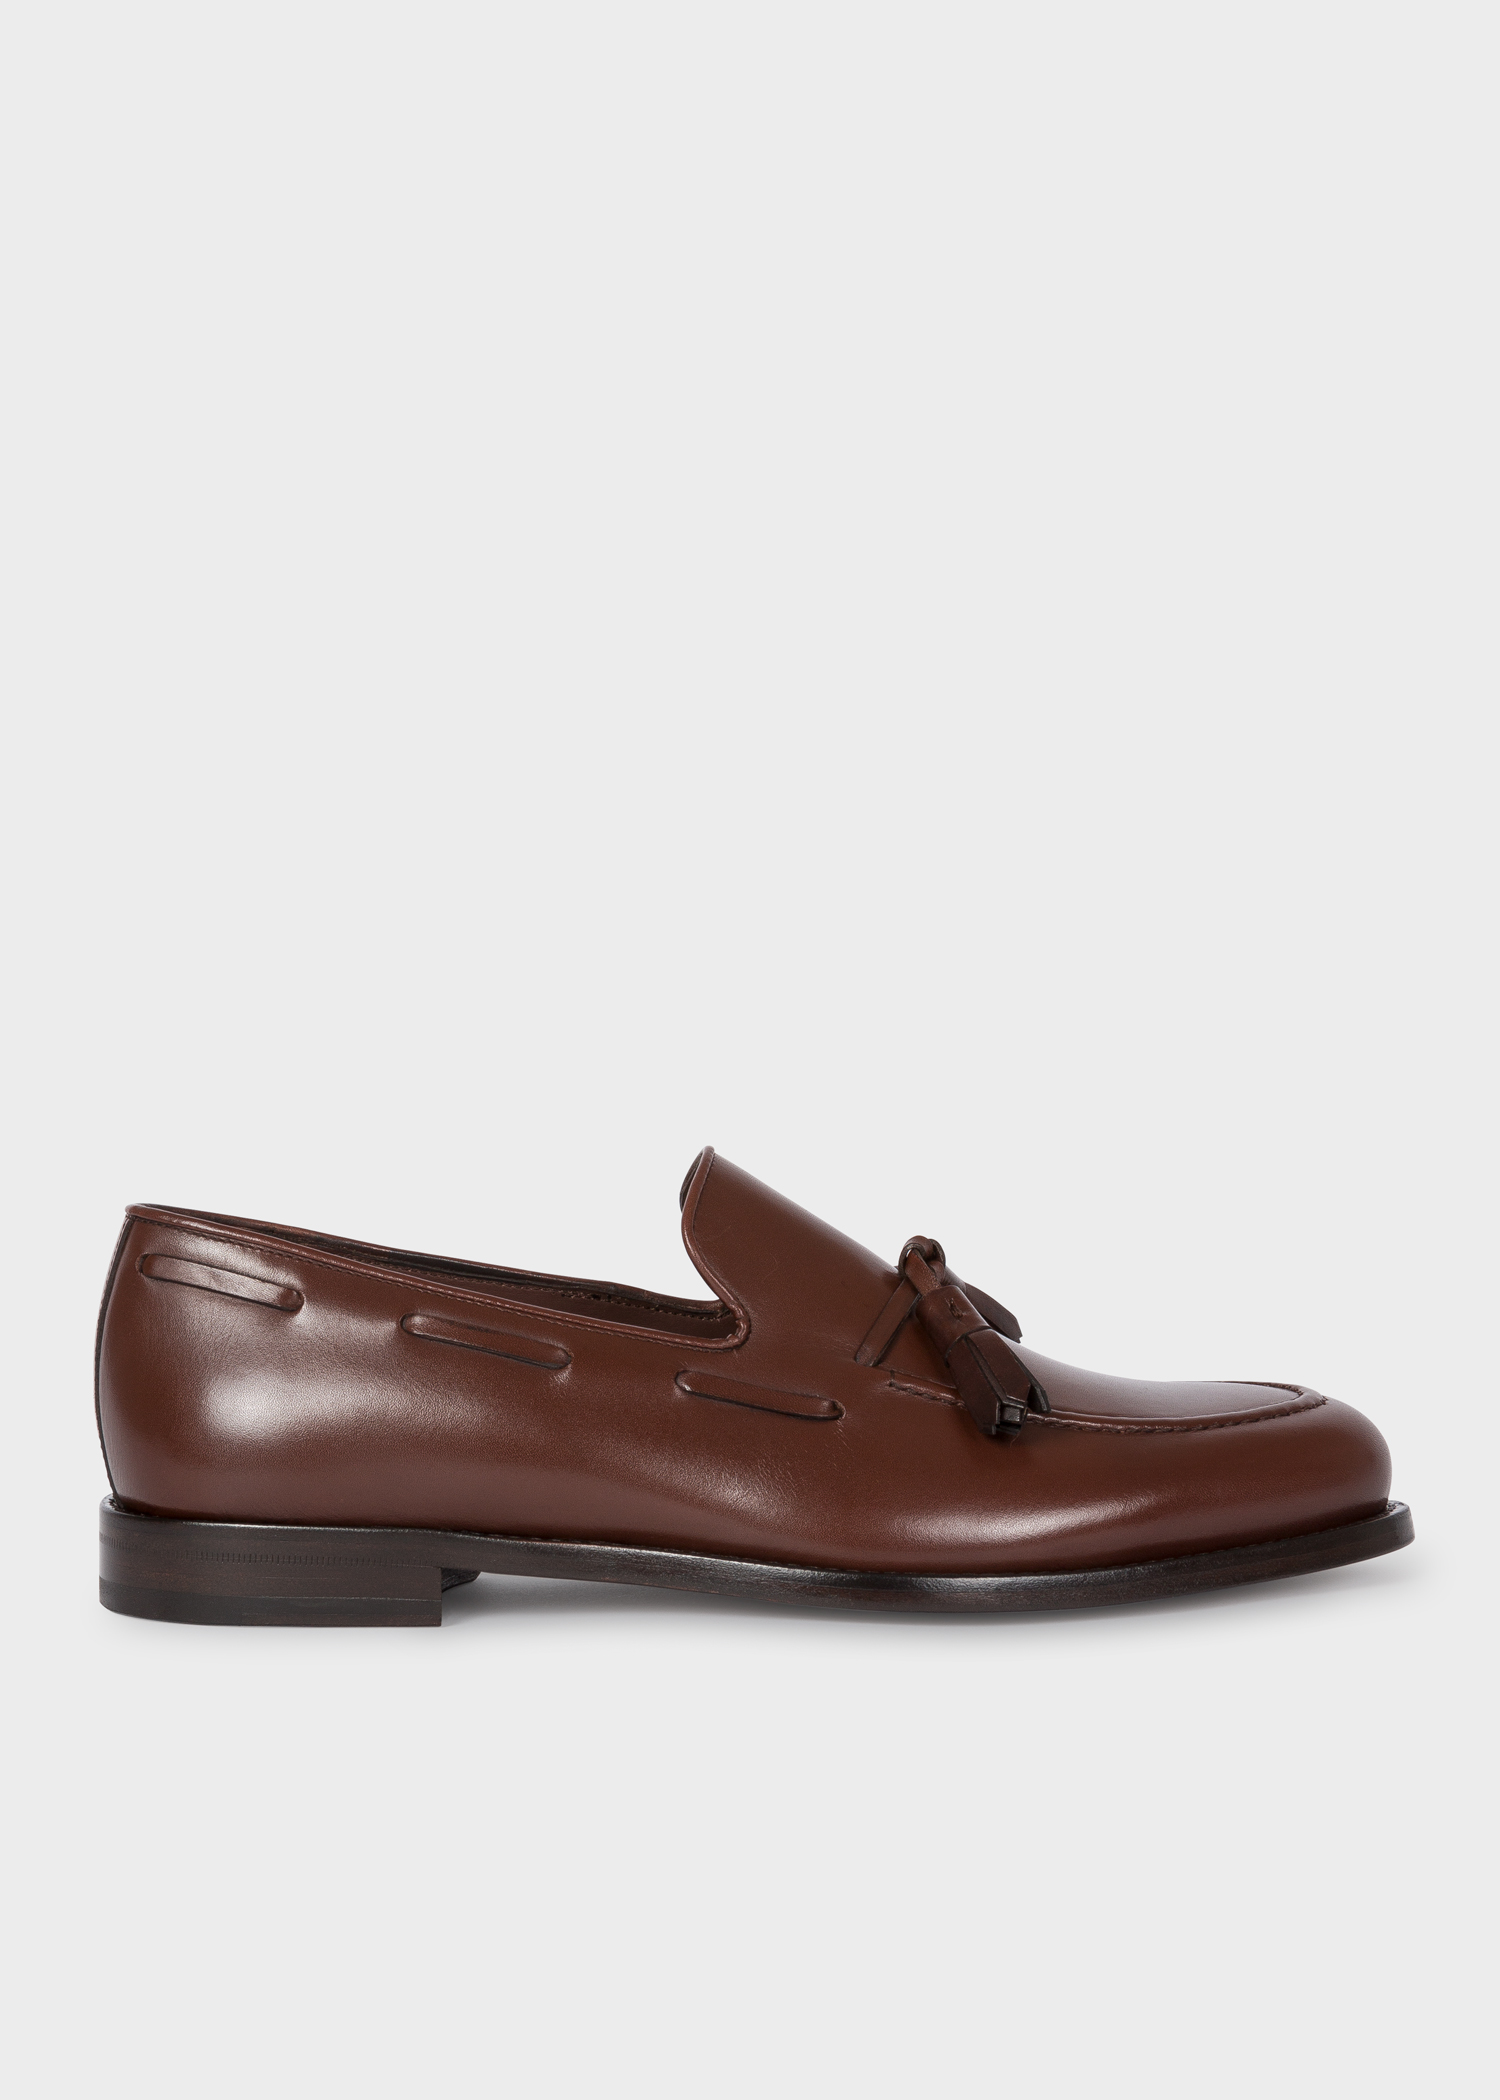 004d1f4bb81 Side view - Men s Dark Brown Leather  Larry  Tasseled Loafers Paul Smith